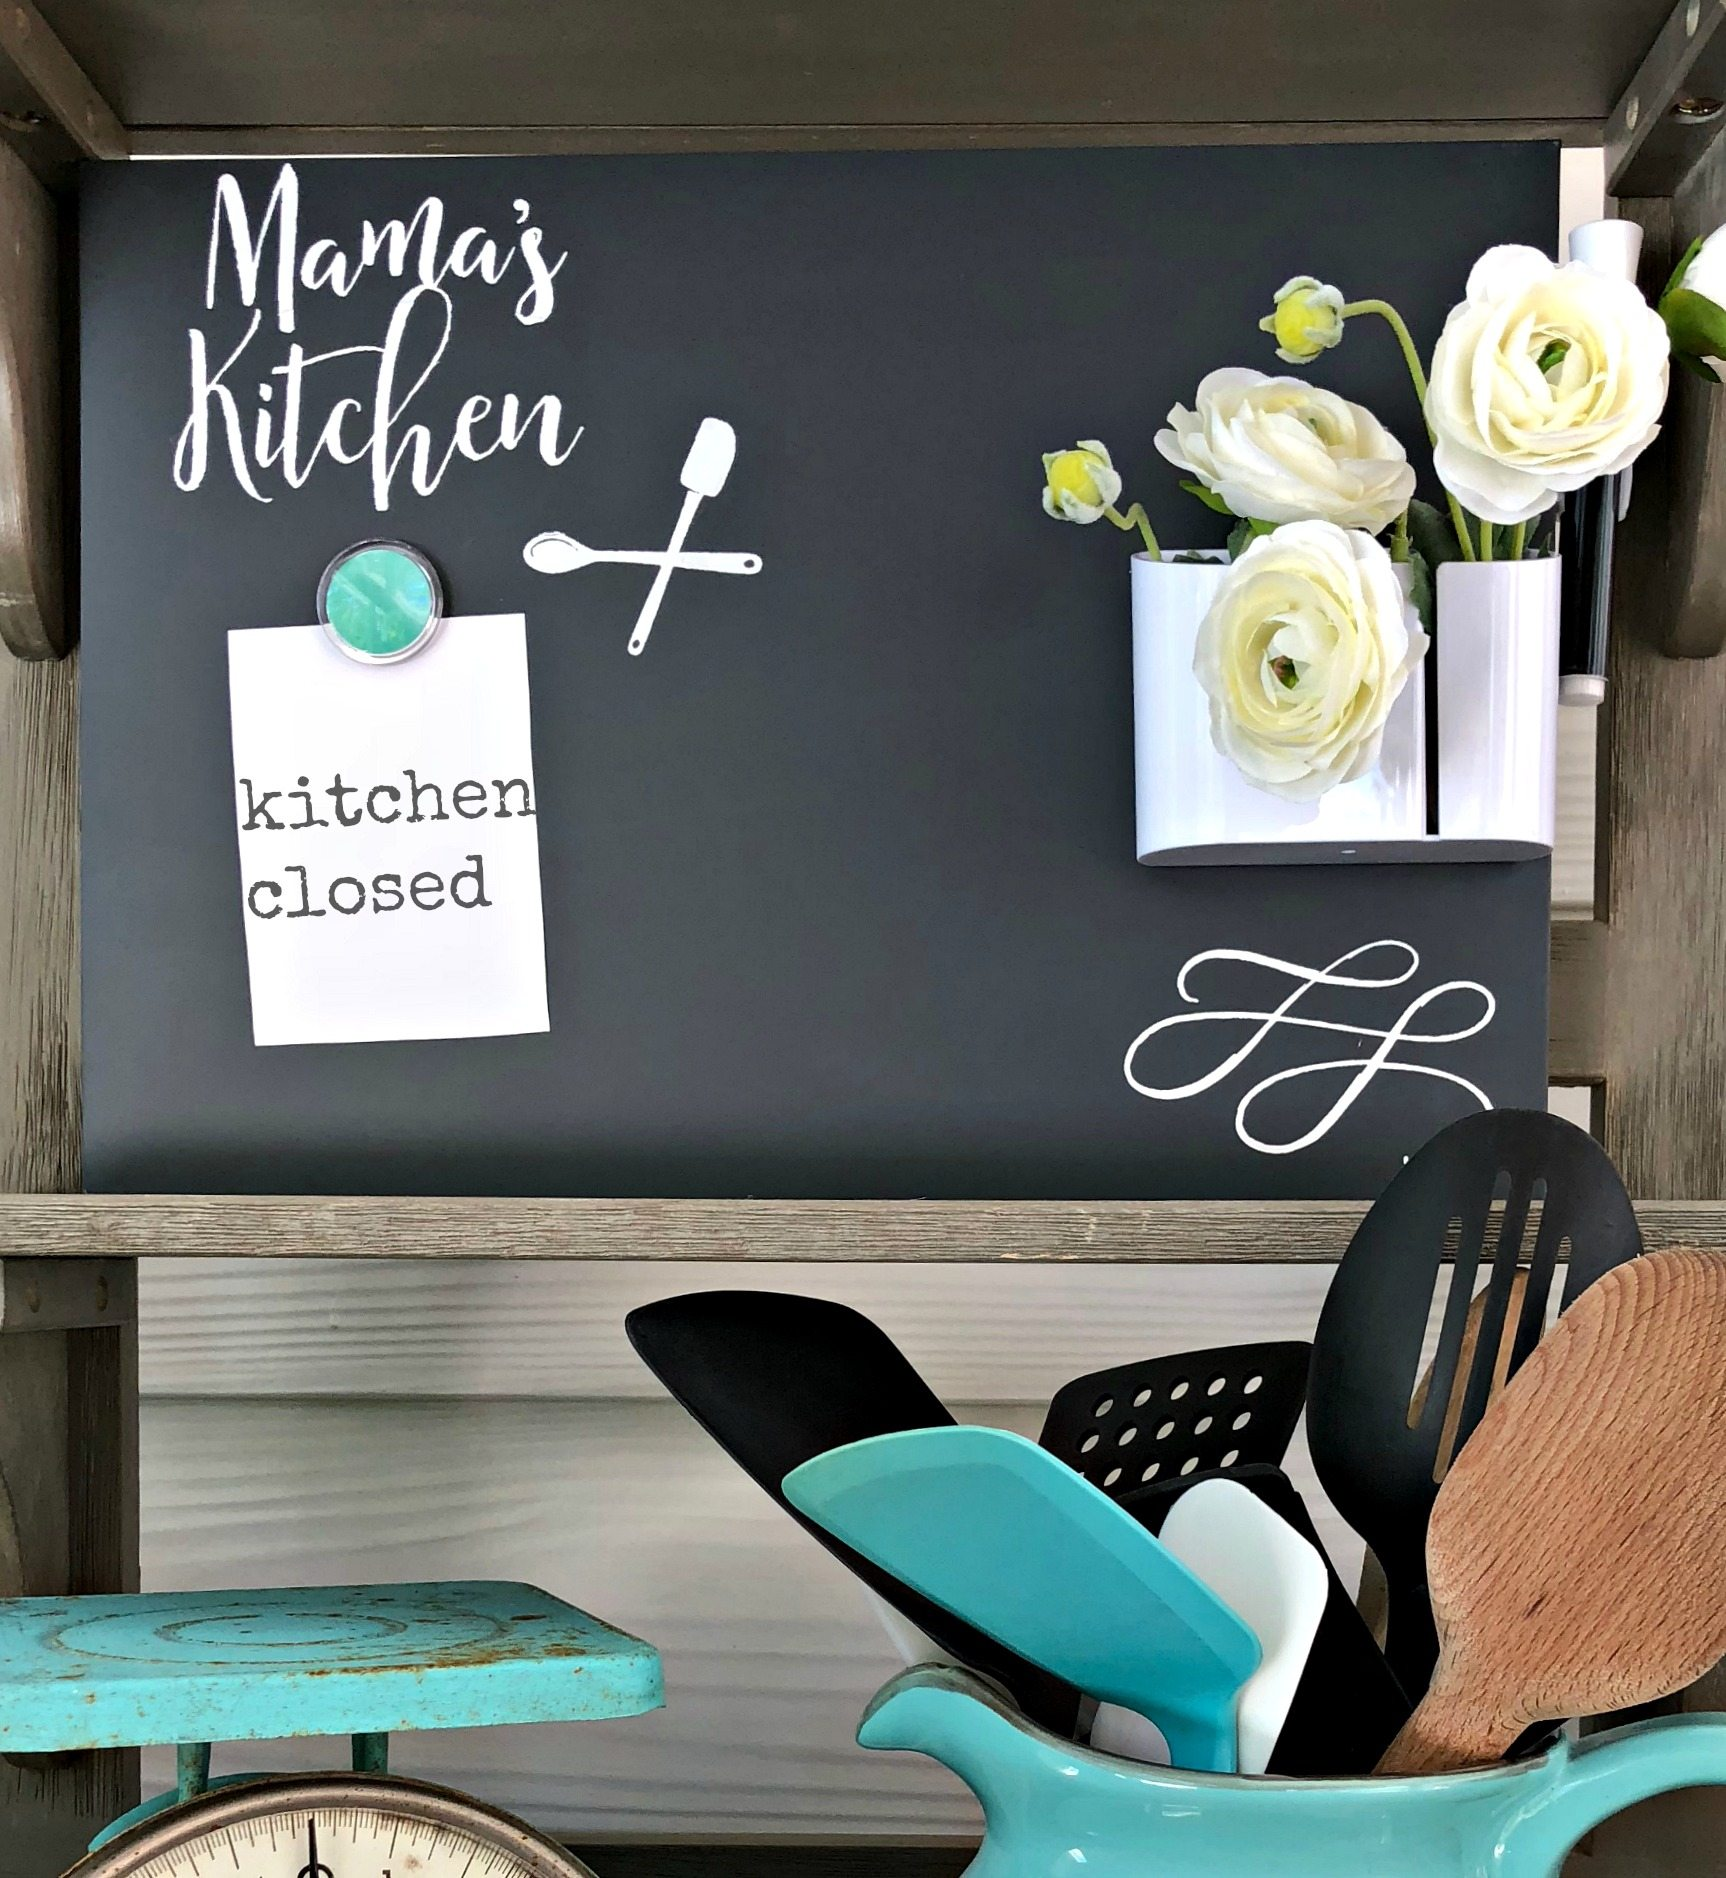 Chalkboard art for the kitchen! Mama will love it! Fast and easy. #chalkcouture #chalkboard #chalkart #kitchen